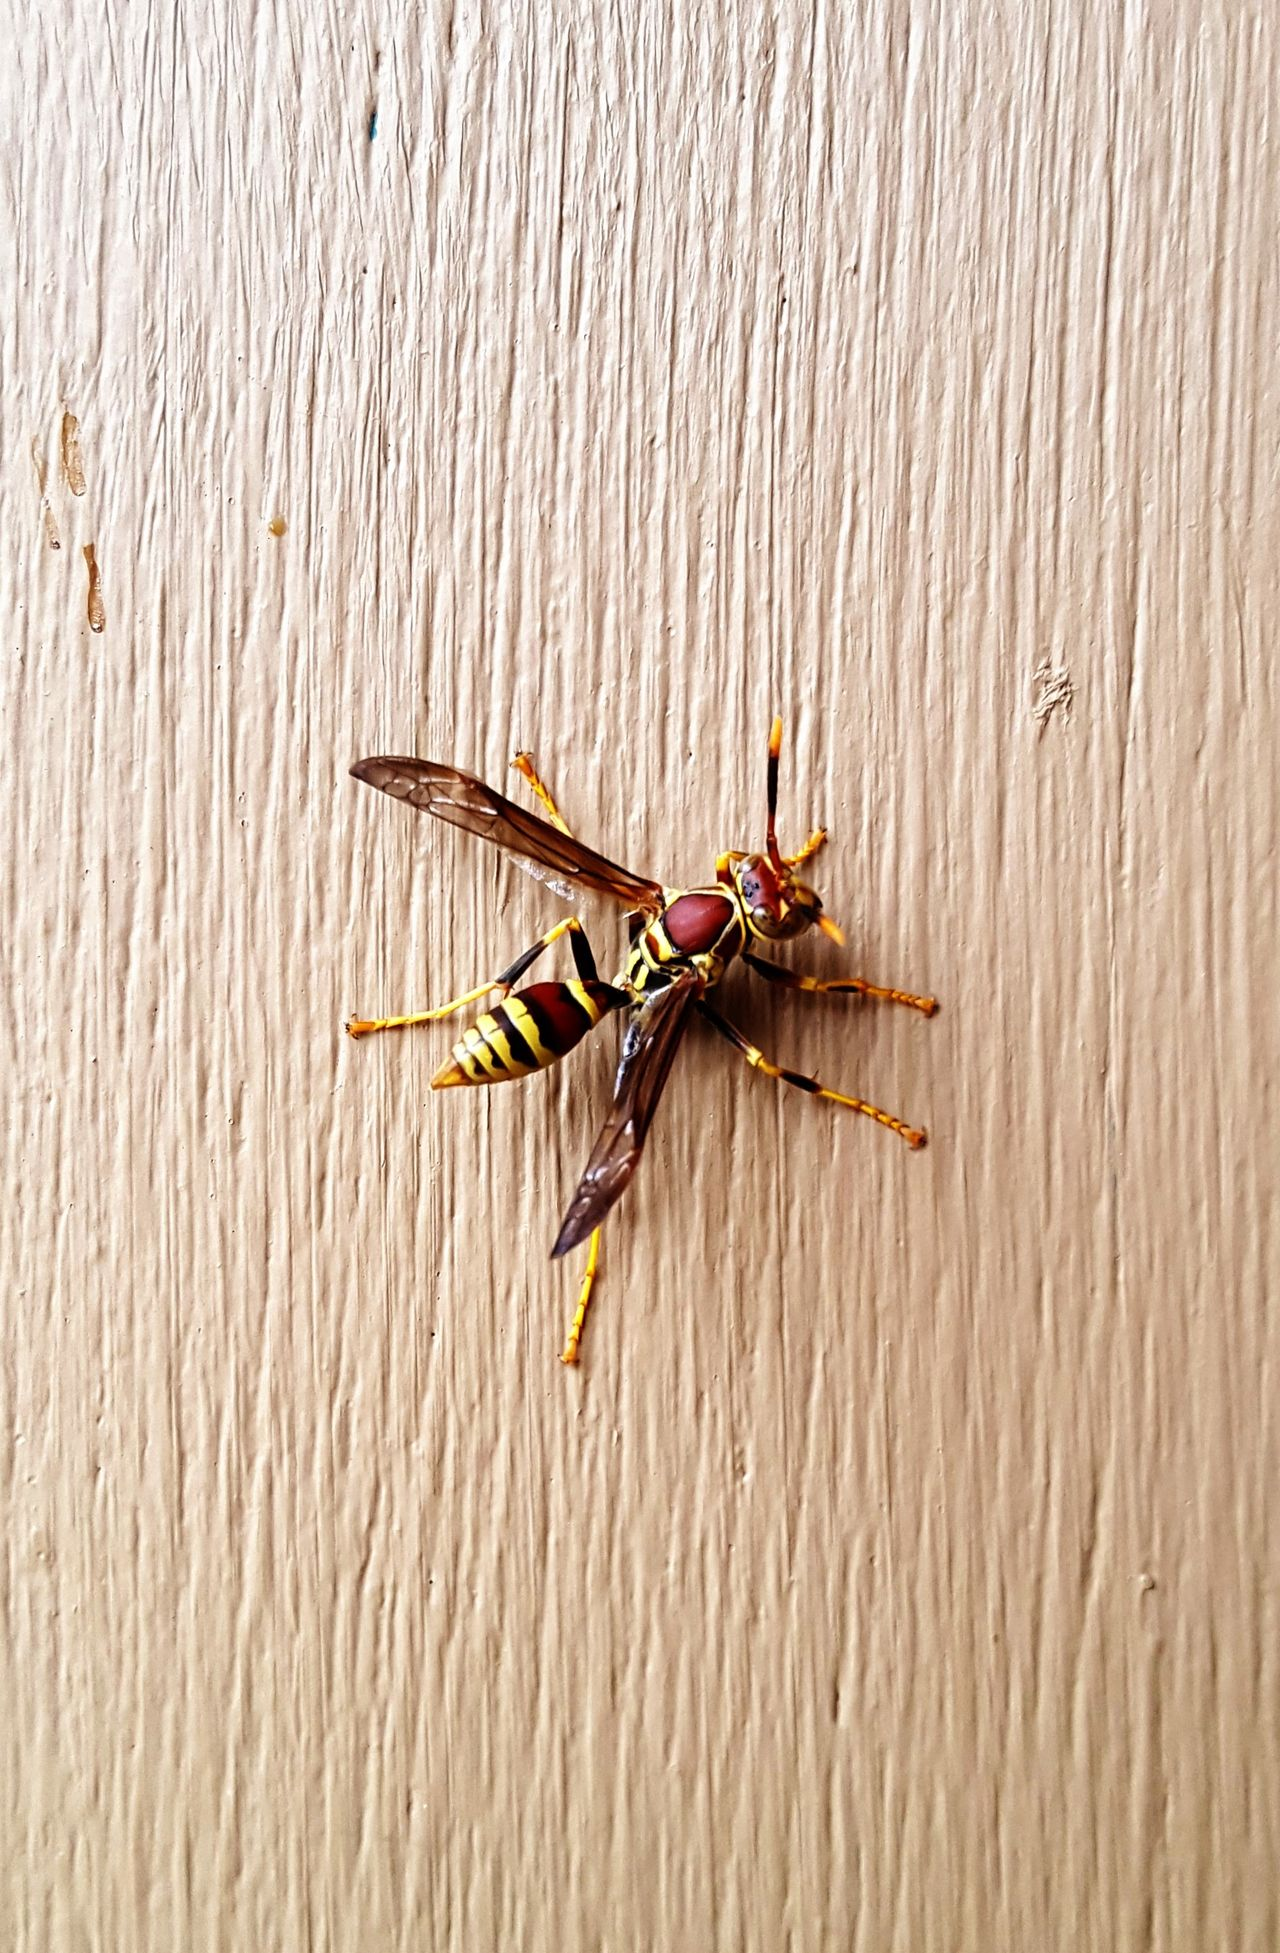 Yellow Jacket on Painted Wood Door Beaty Close-up Day Insect No People Wasp Wasp Macro Wood Surface Yellow Jacket